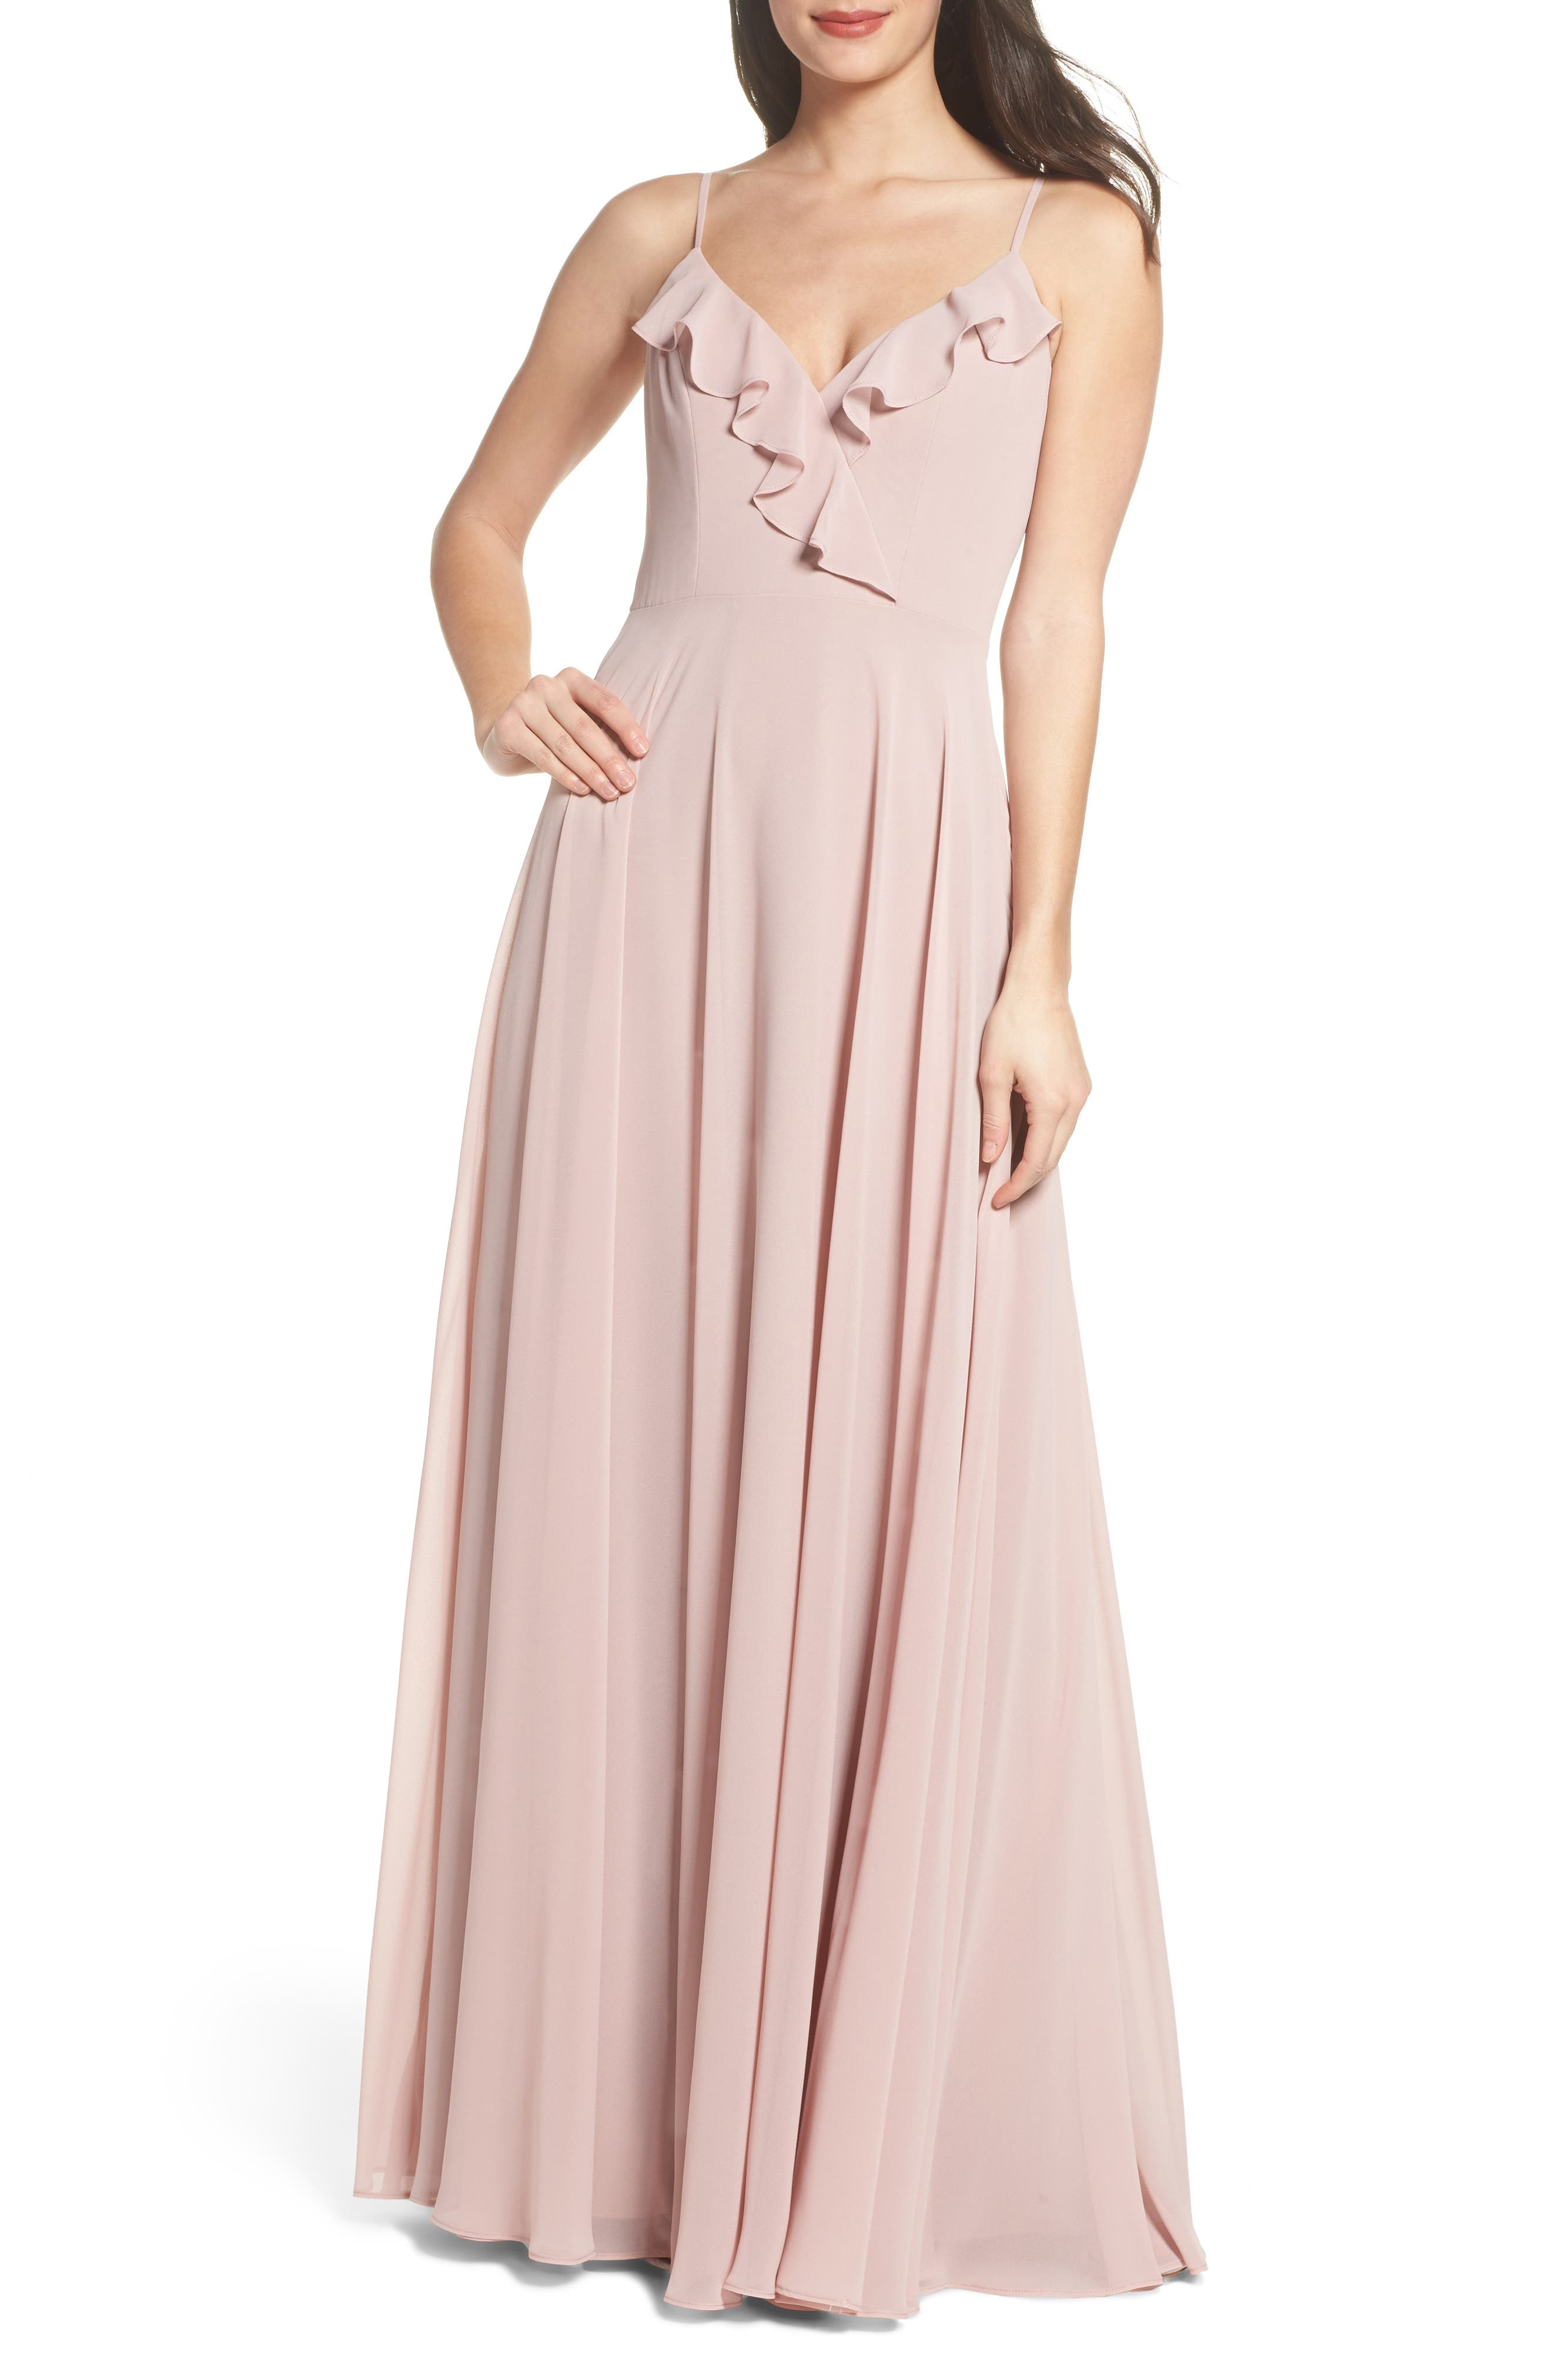 Ruffle Chiffon Gown,                             Main thumbnail 1, color,                             Dusty Rose